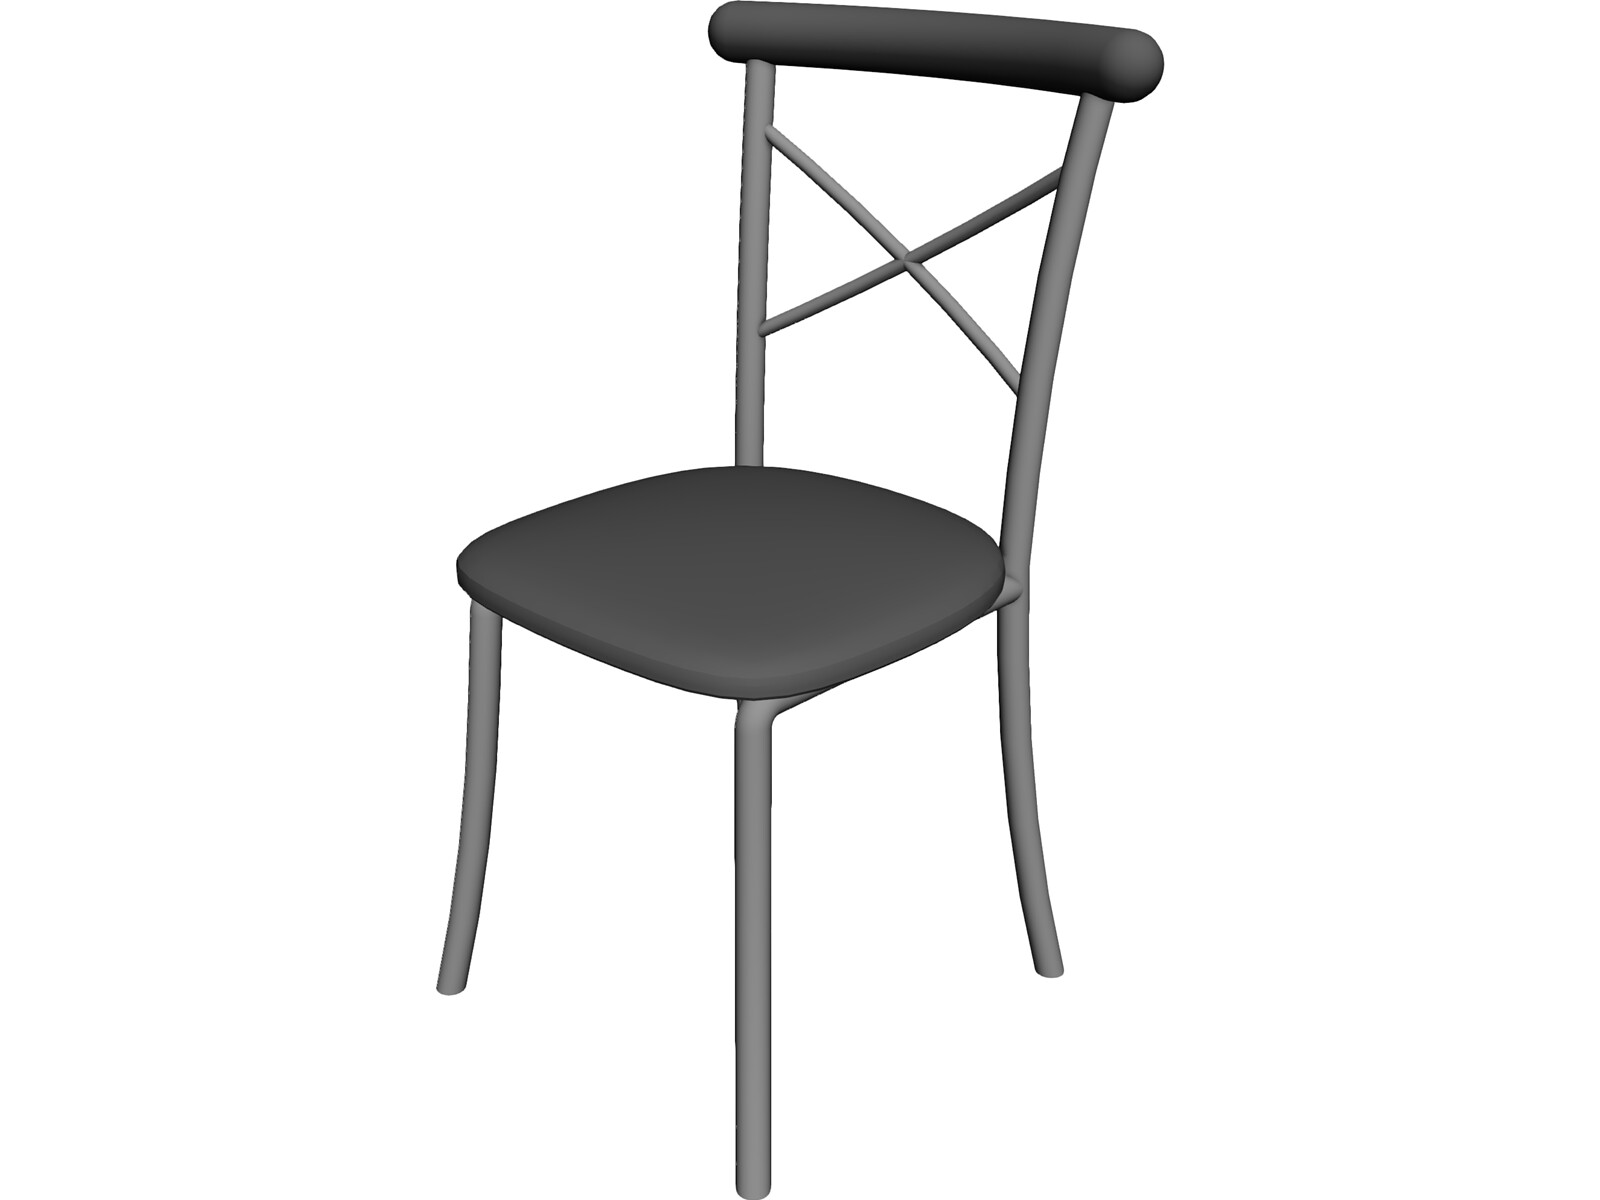 egg chairs ikea wedding chair covers halifax metal kitchen with padded back 3d model - cad browser